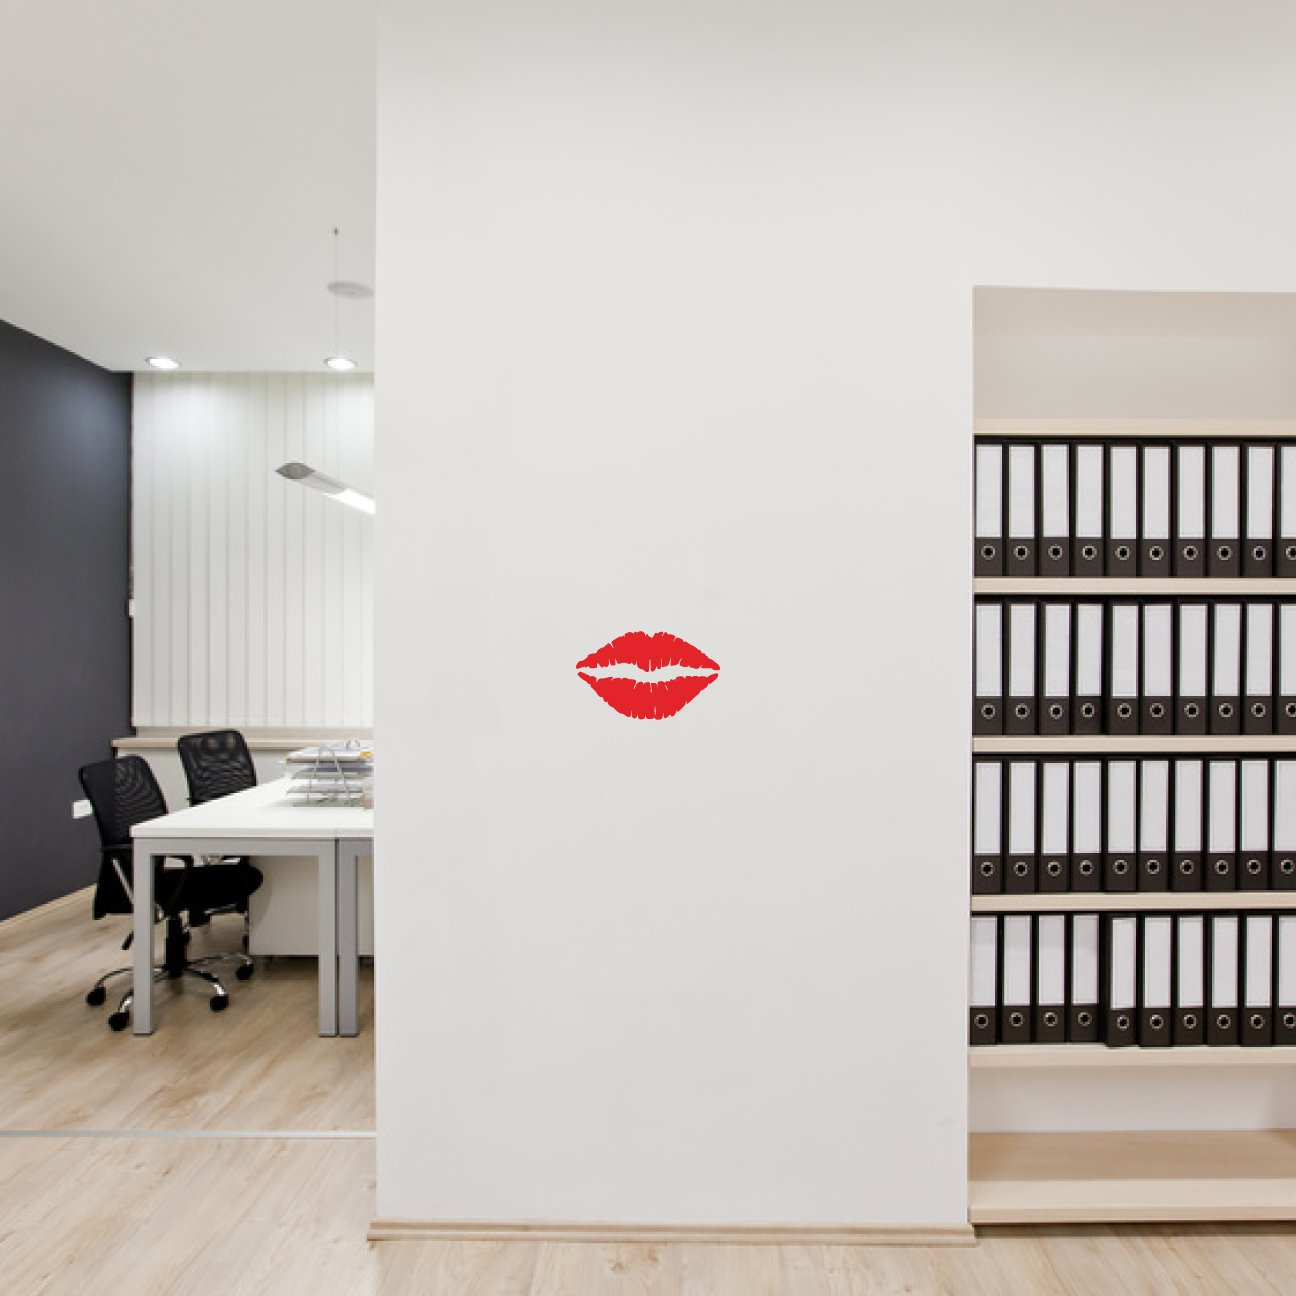 amazon com kiss wall decal sticker kissing lips decoration amazon com kiss wall decal sticker kissing lips decoration mural decal stickers and mural for kids boys girls room and bedroom